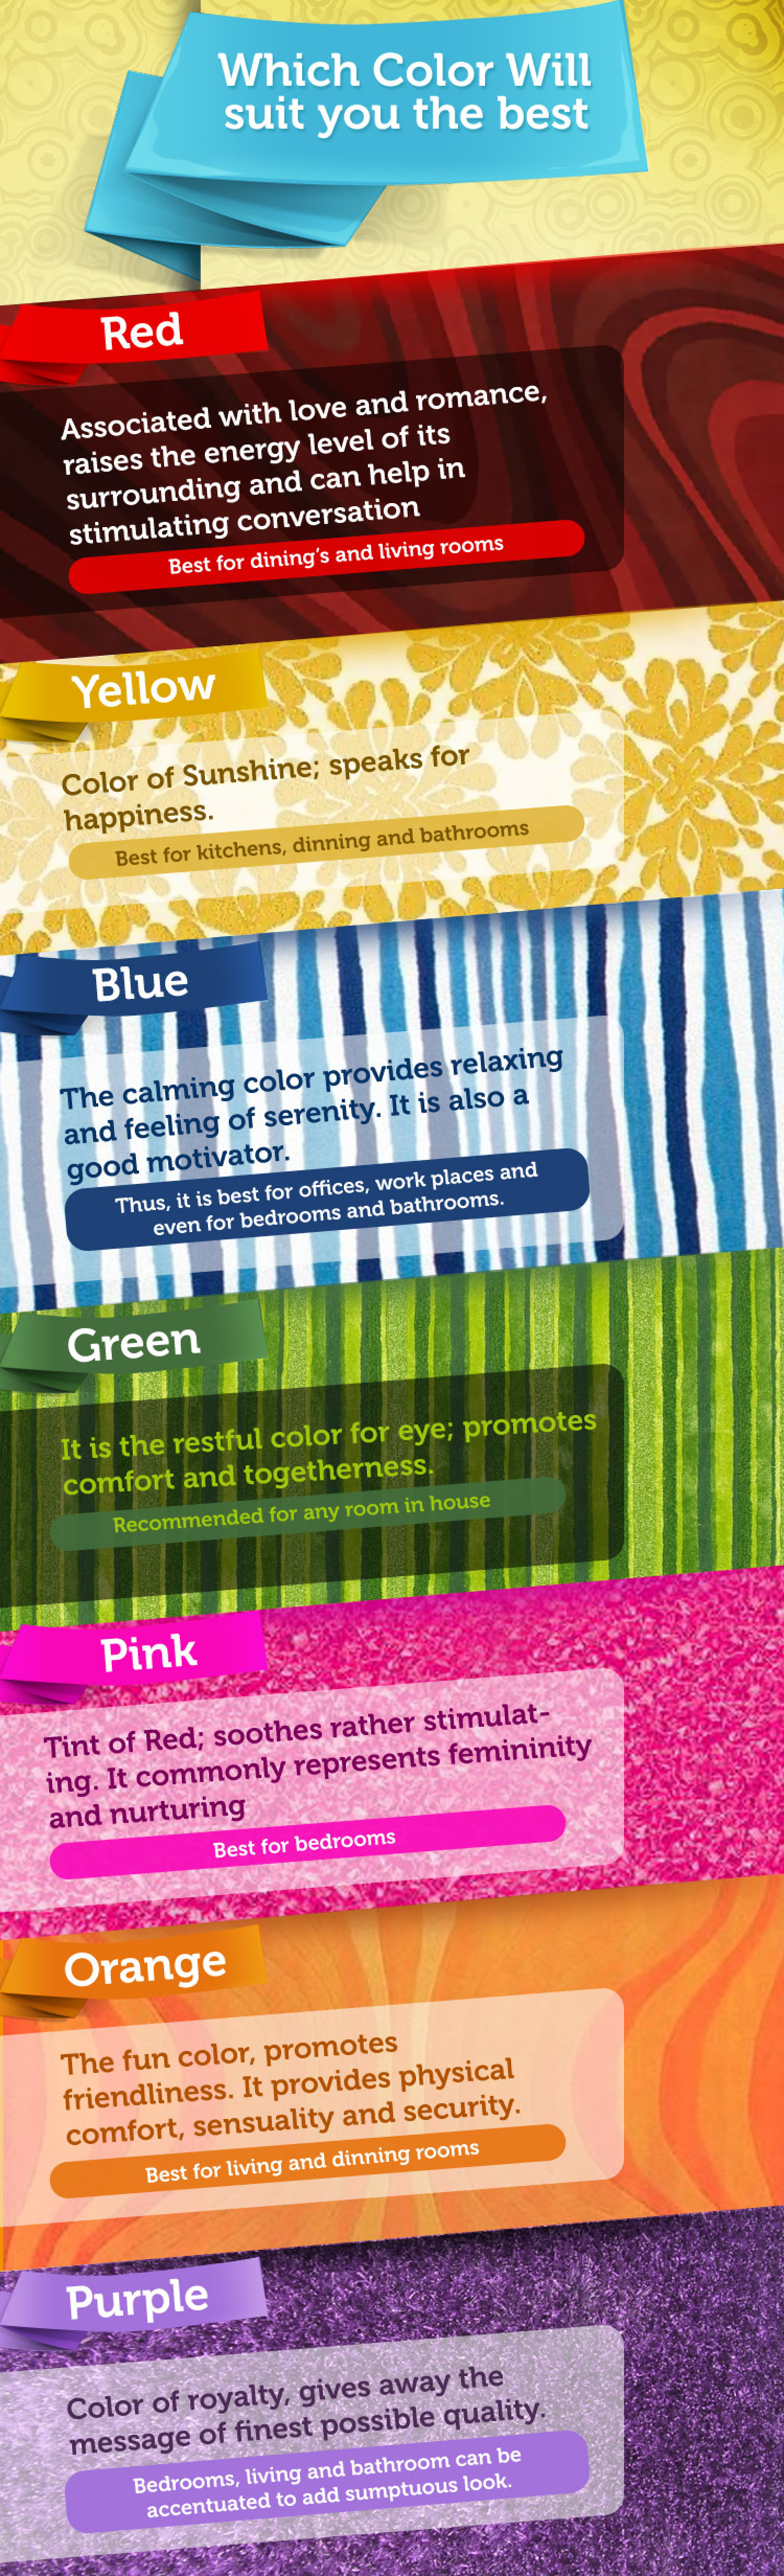 Which color will suit you the best Infographic